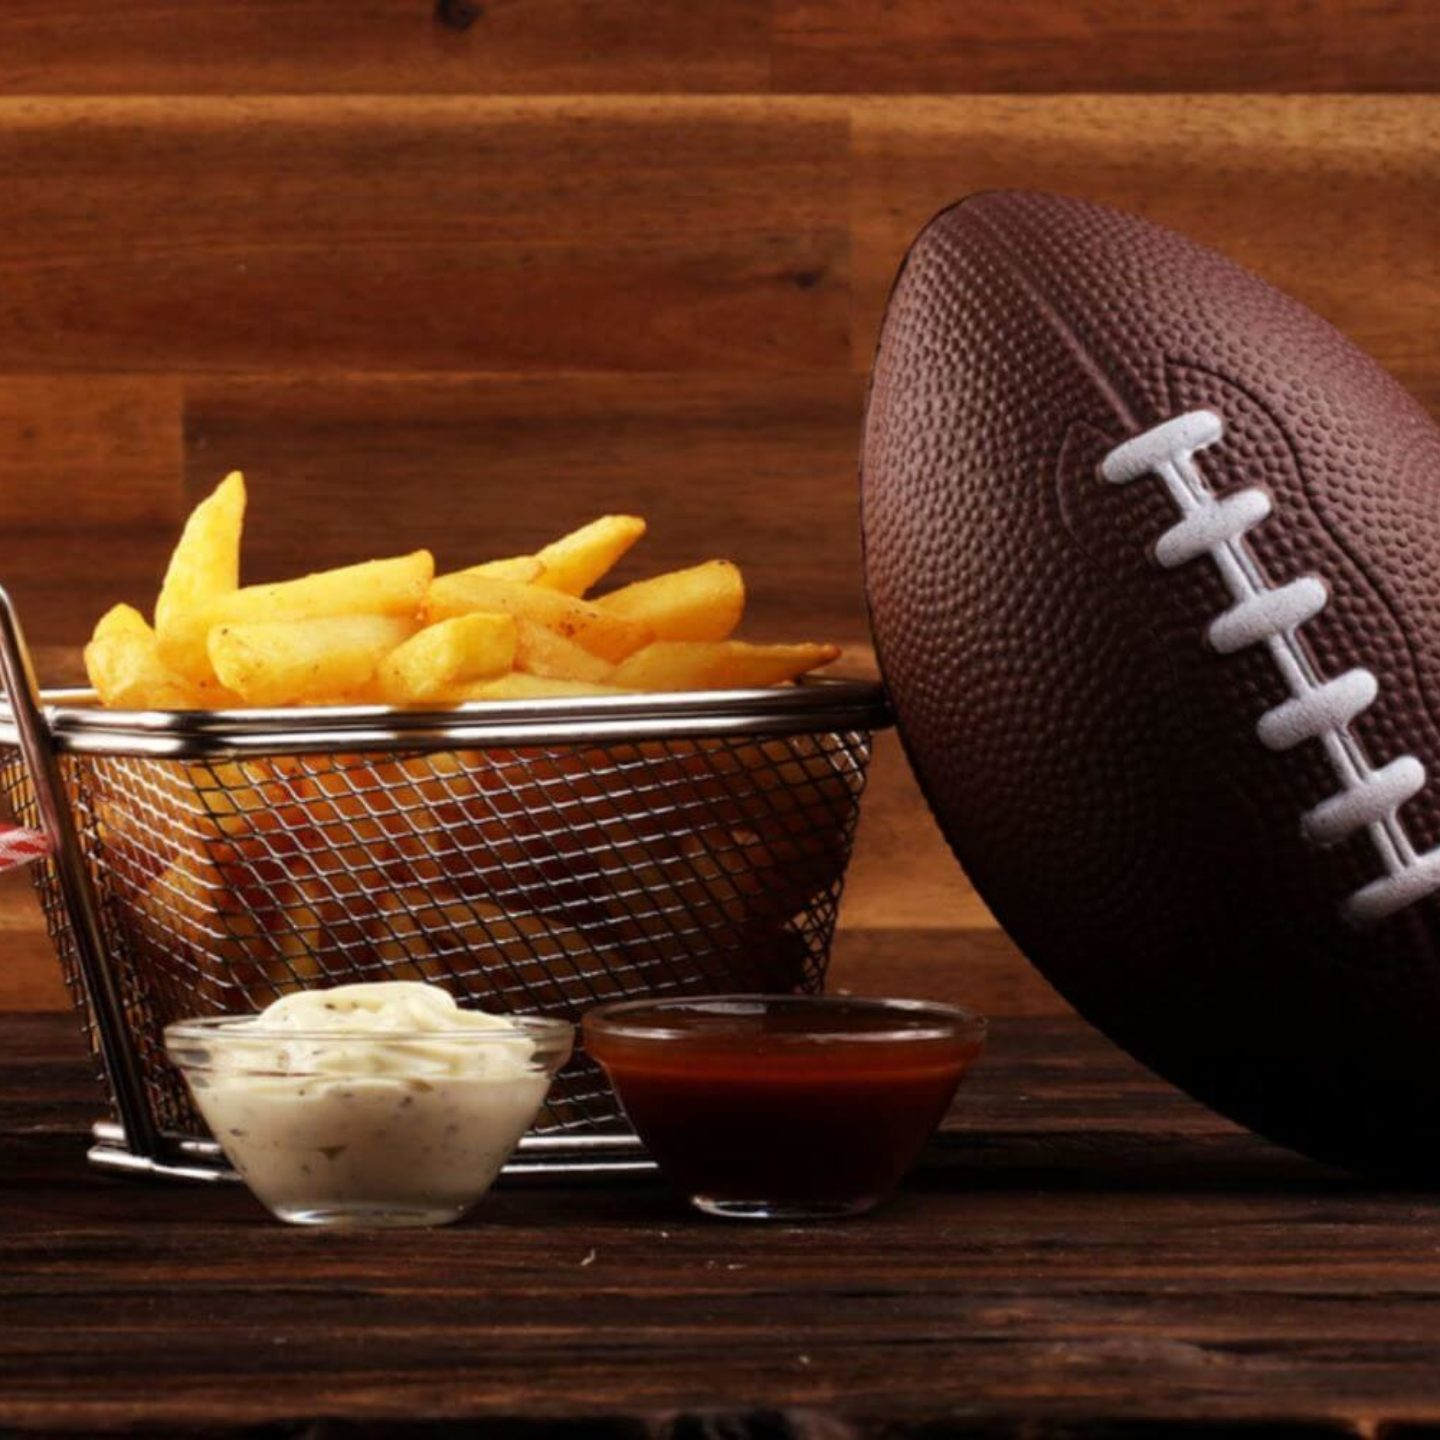 Wings, fries, and football - Guacamole, Chicken Wings, and Food Poisoning